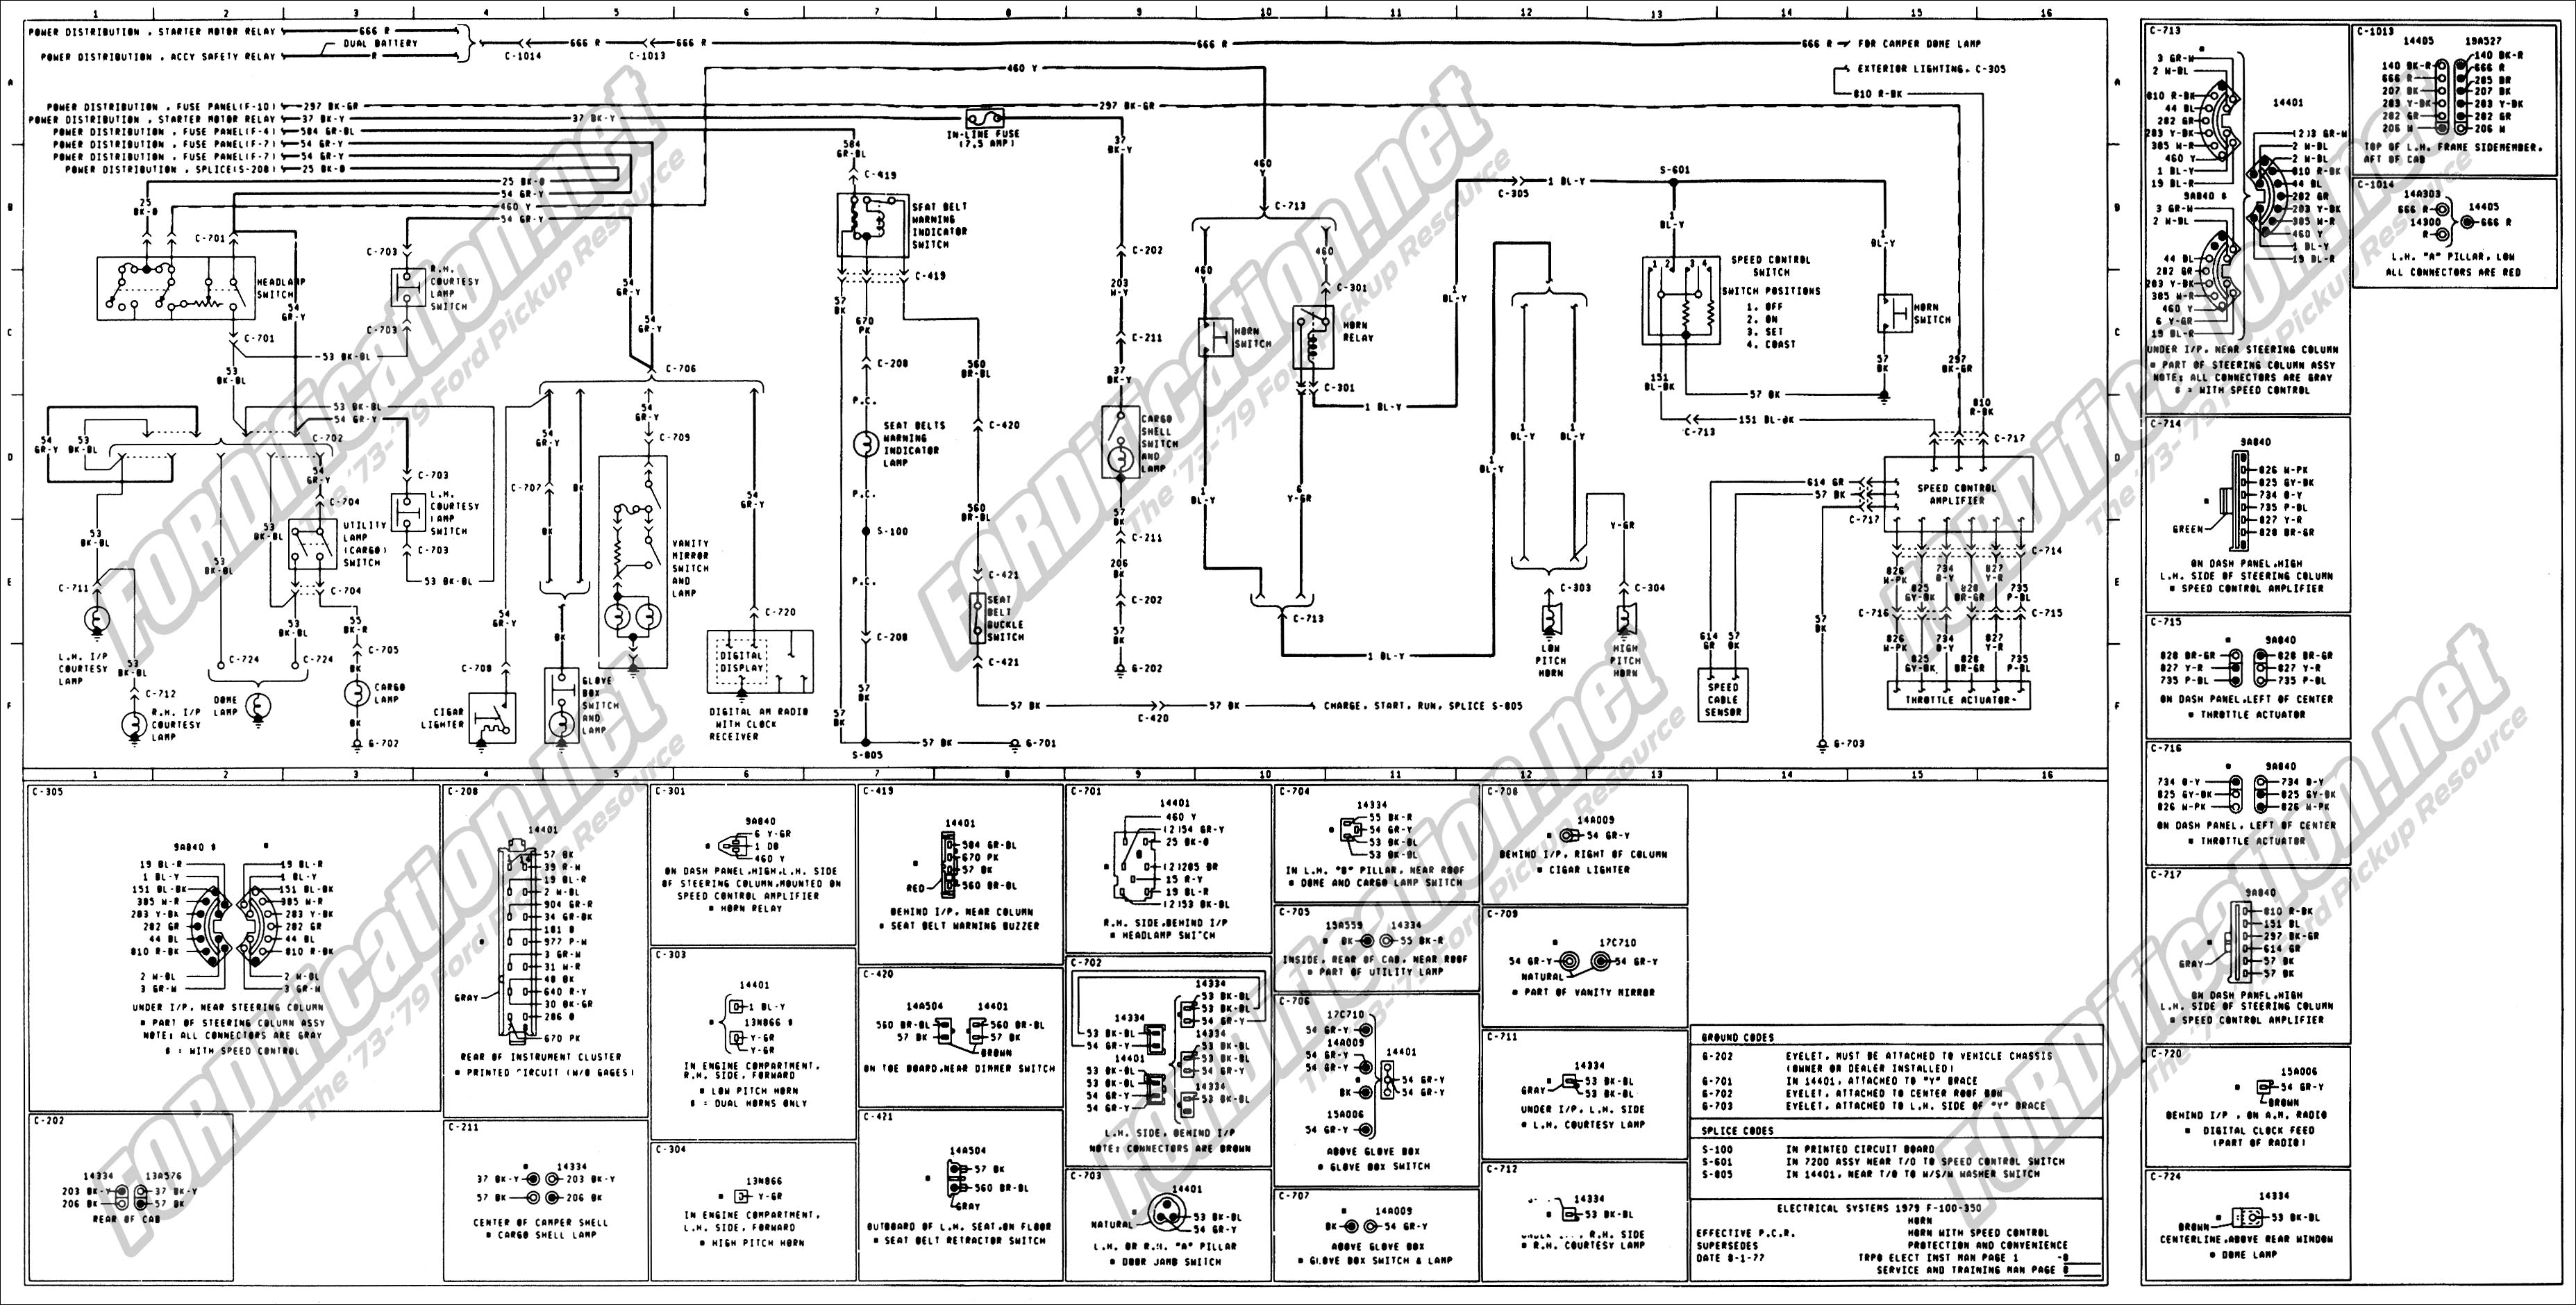 ford vacuum diagrams f 250 351 detailed schematics diagram rh jppastryarts  com Ford E350 Solenoid Diagram 2005 Ford E350 Manifold Vacuum